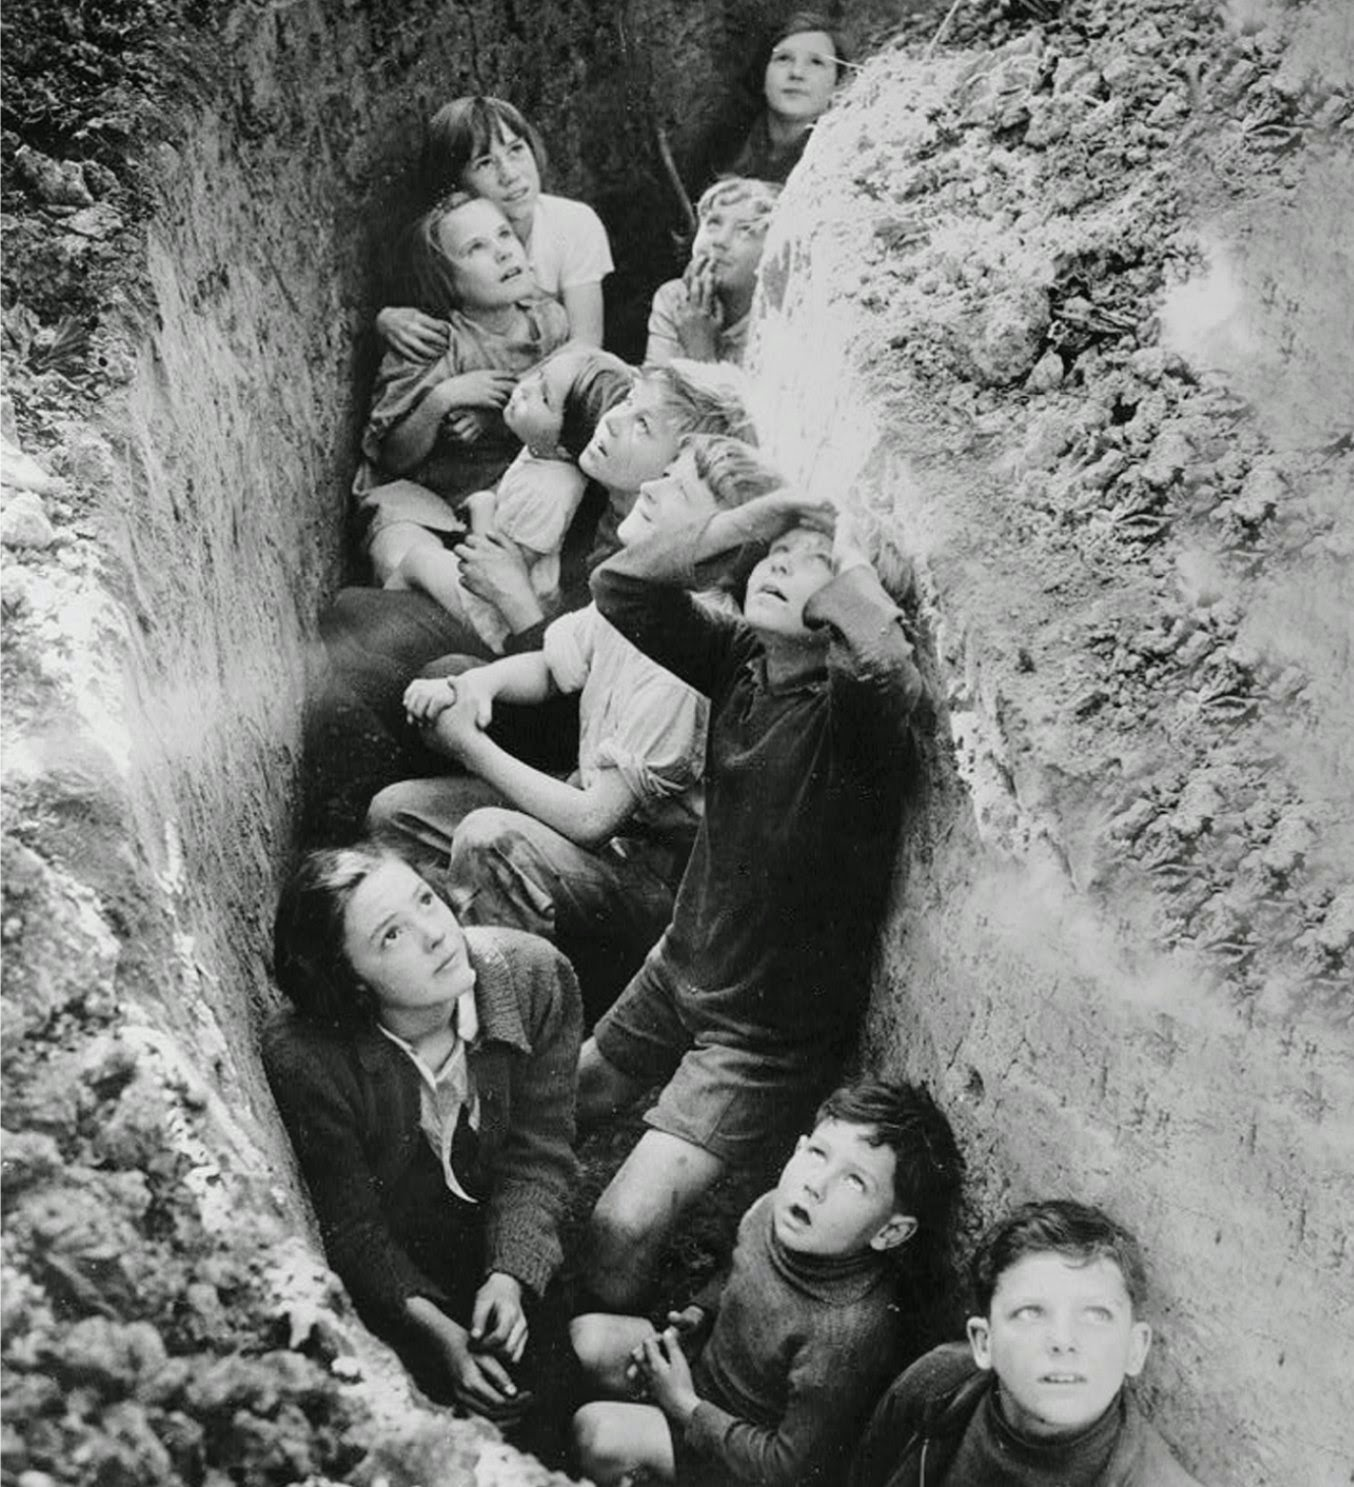 Old Snapshots Of British Schoolchildren During World War